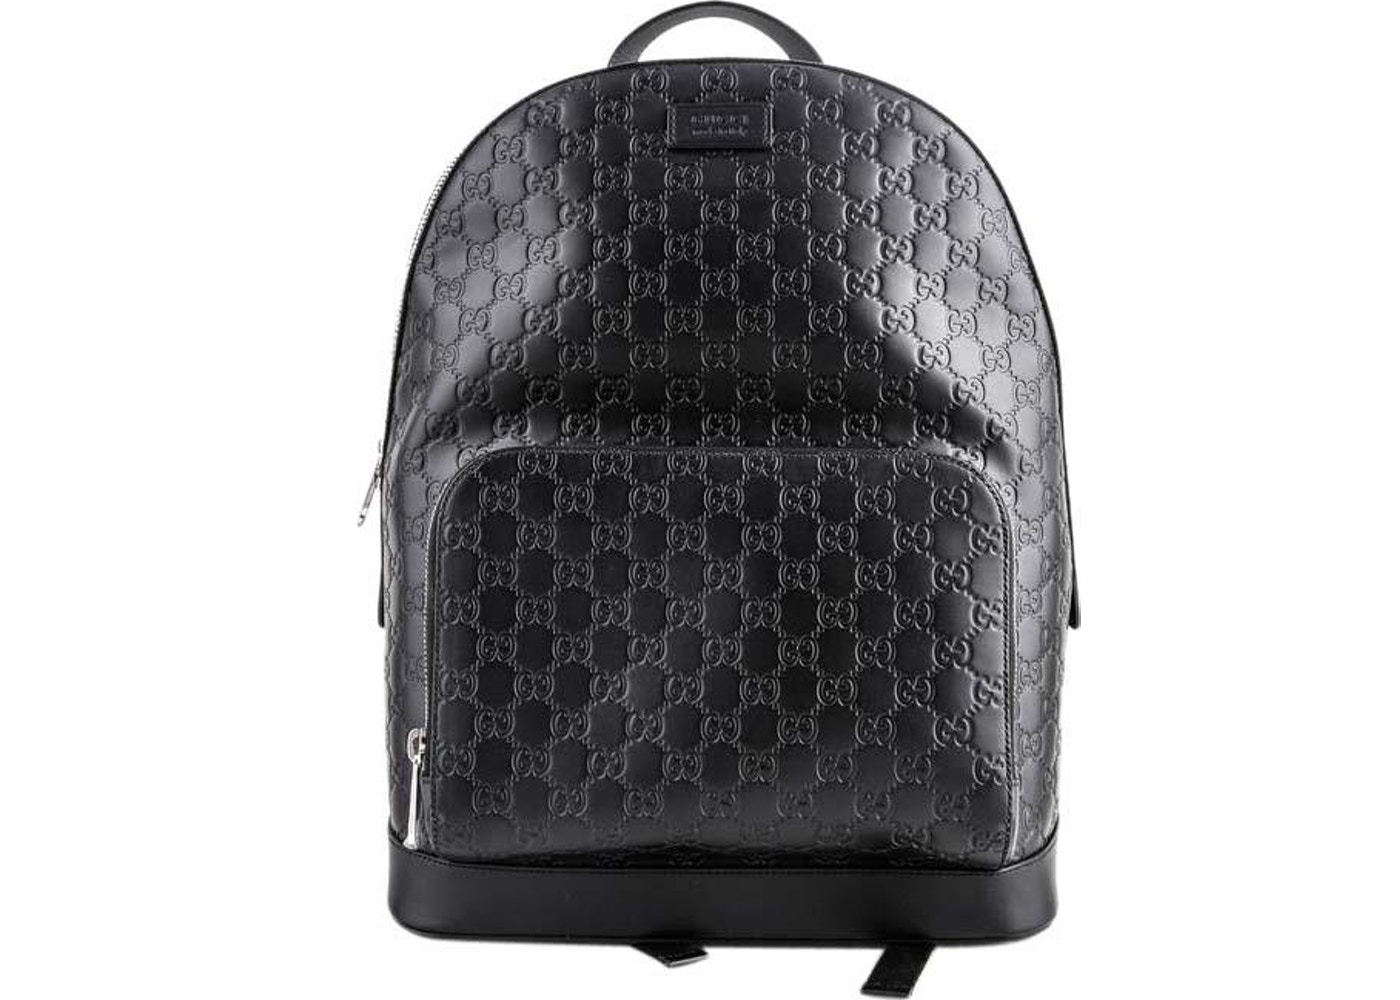 5215173fb Gucci Signature Backpack GG Monogram Front Zipper Pocket ...